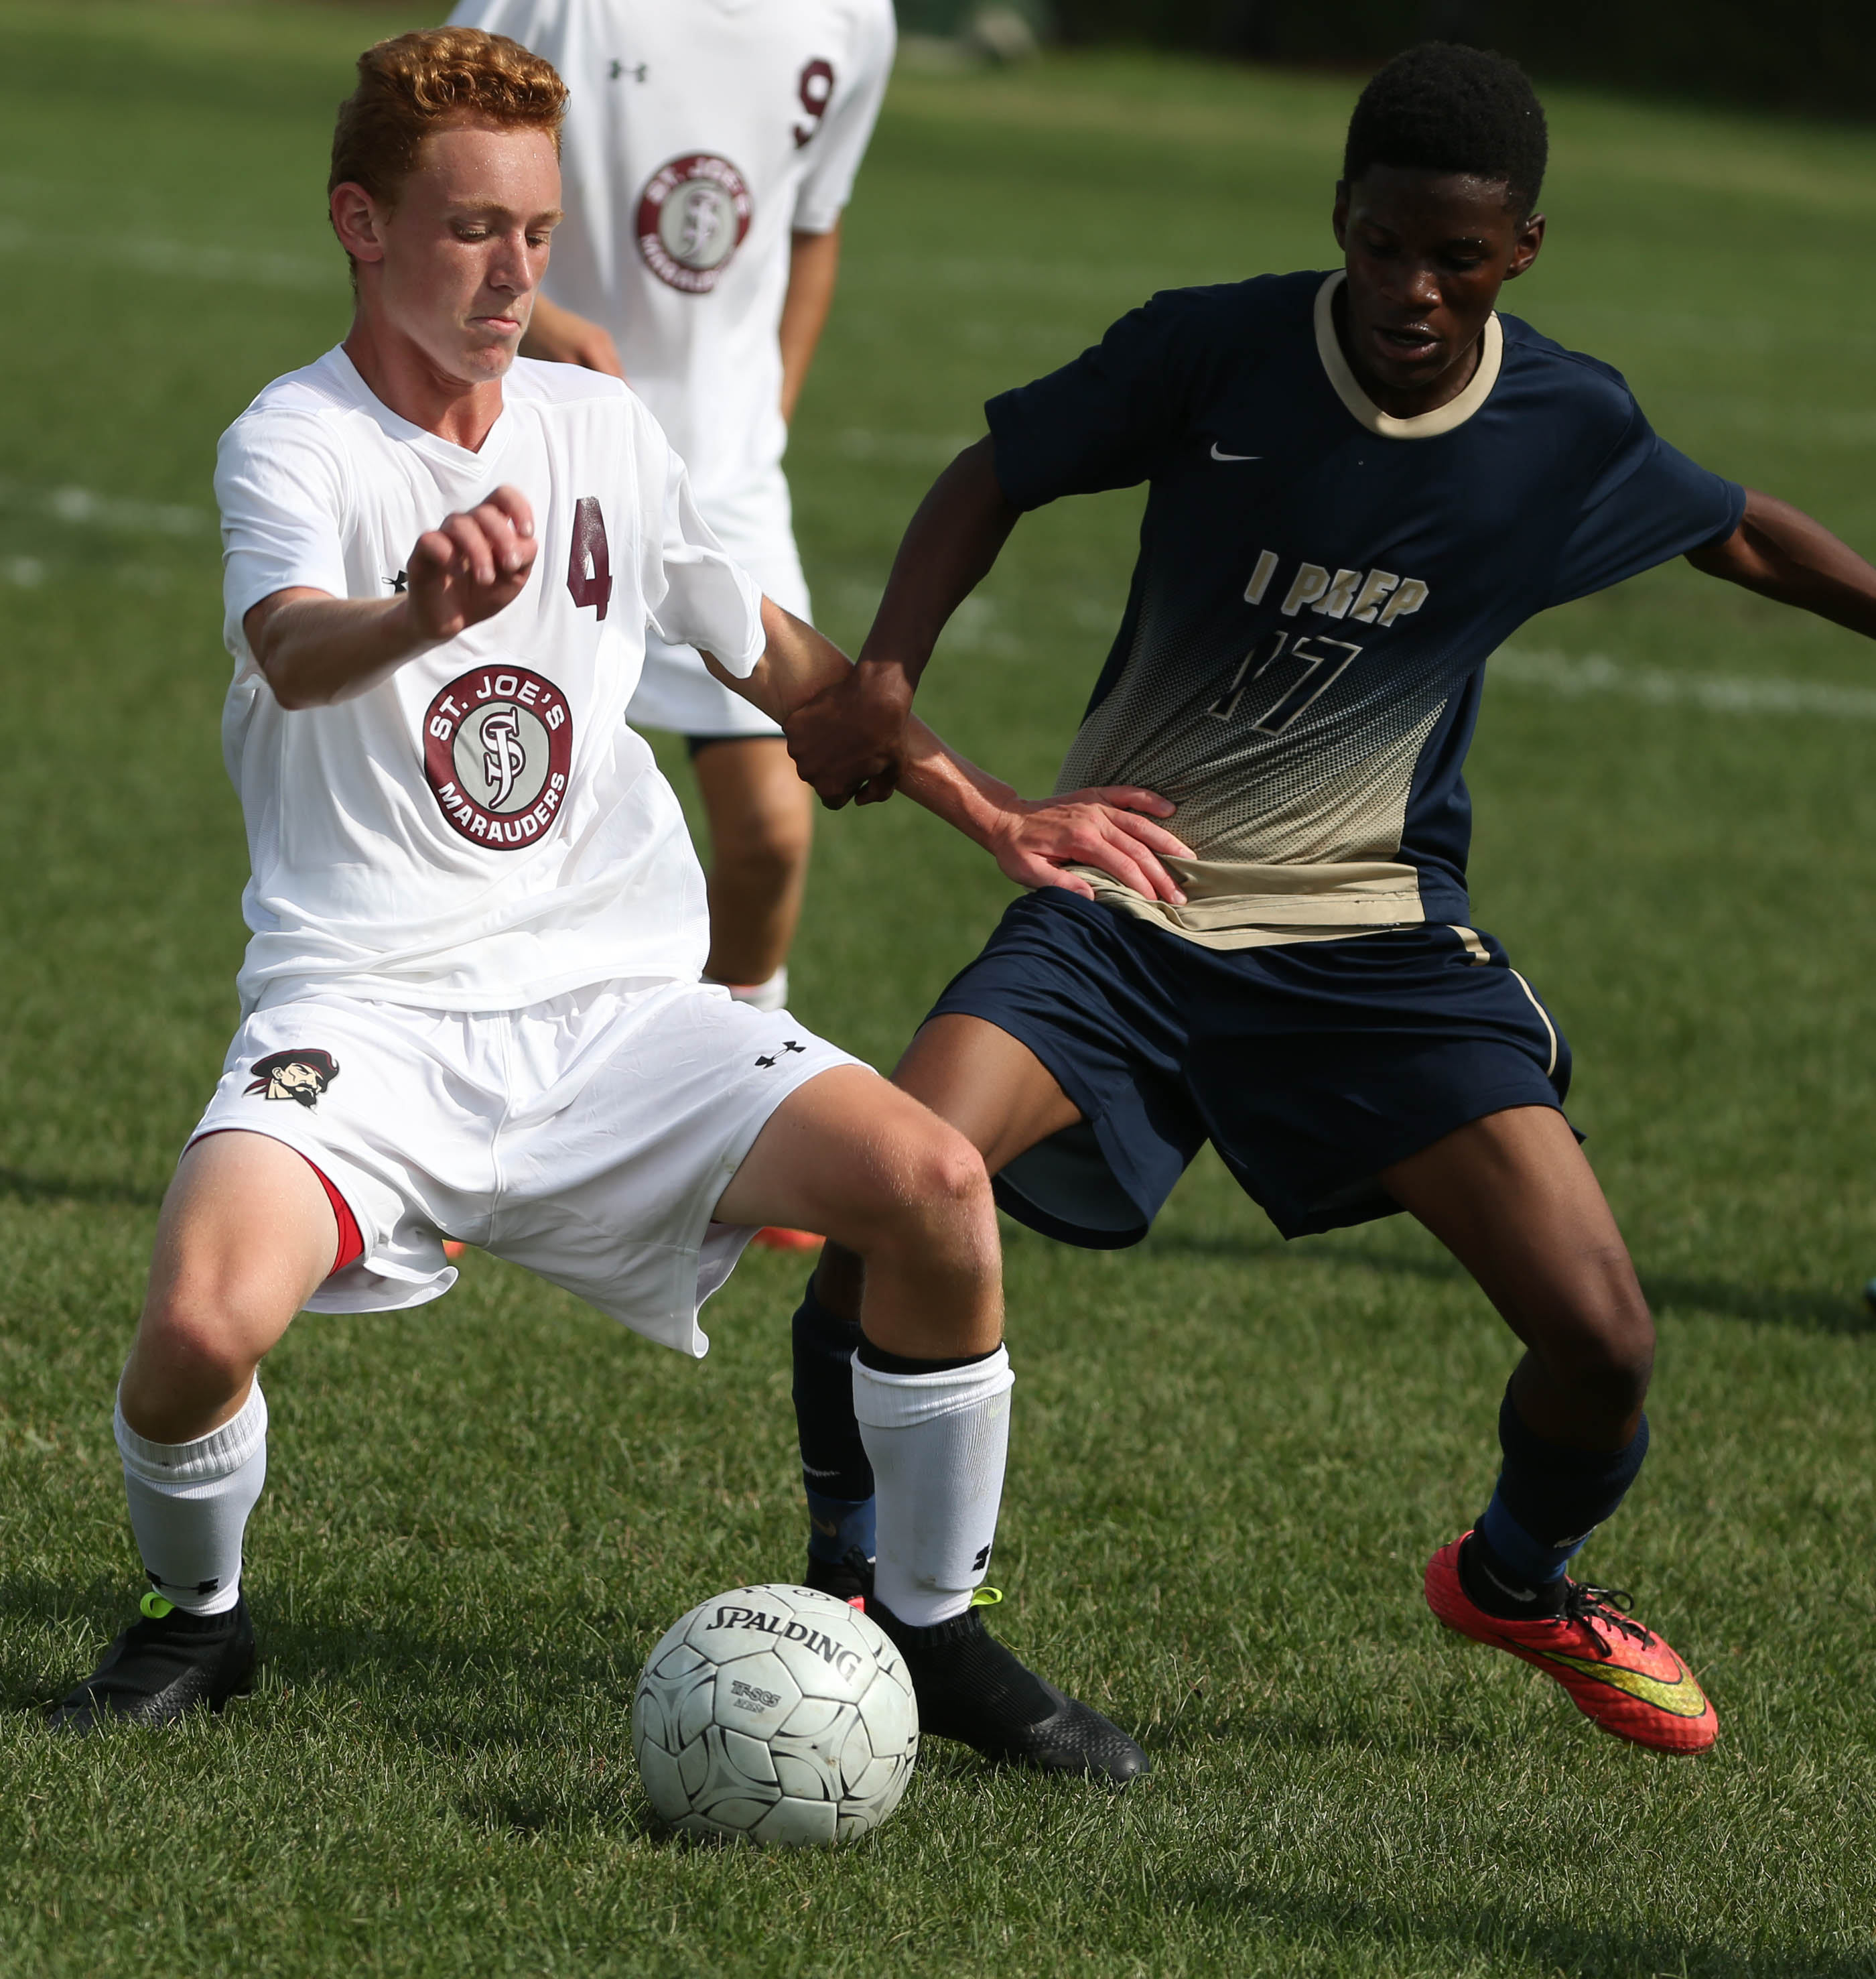 St. Joe's Mitchell Kubiak battles International Prep's Abdikarium Sabtow in the second half of a game on Aug. 31. The Marauders and Presidents are among the top teams voted into this week's soccer polls.  (James P. McCoy/ Buffalo News)